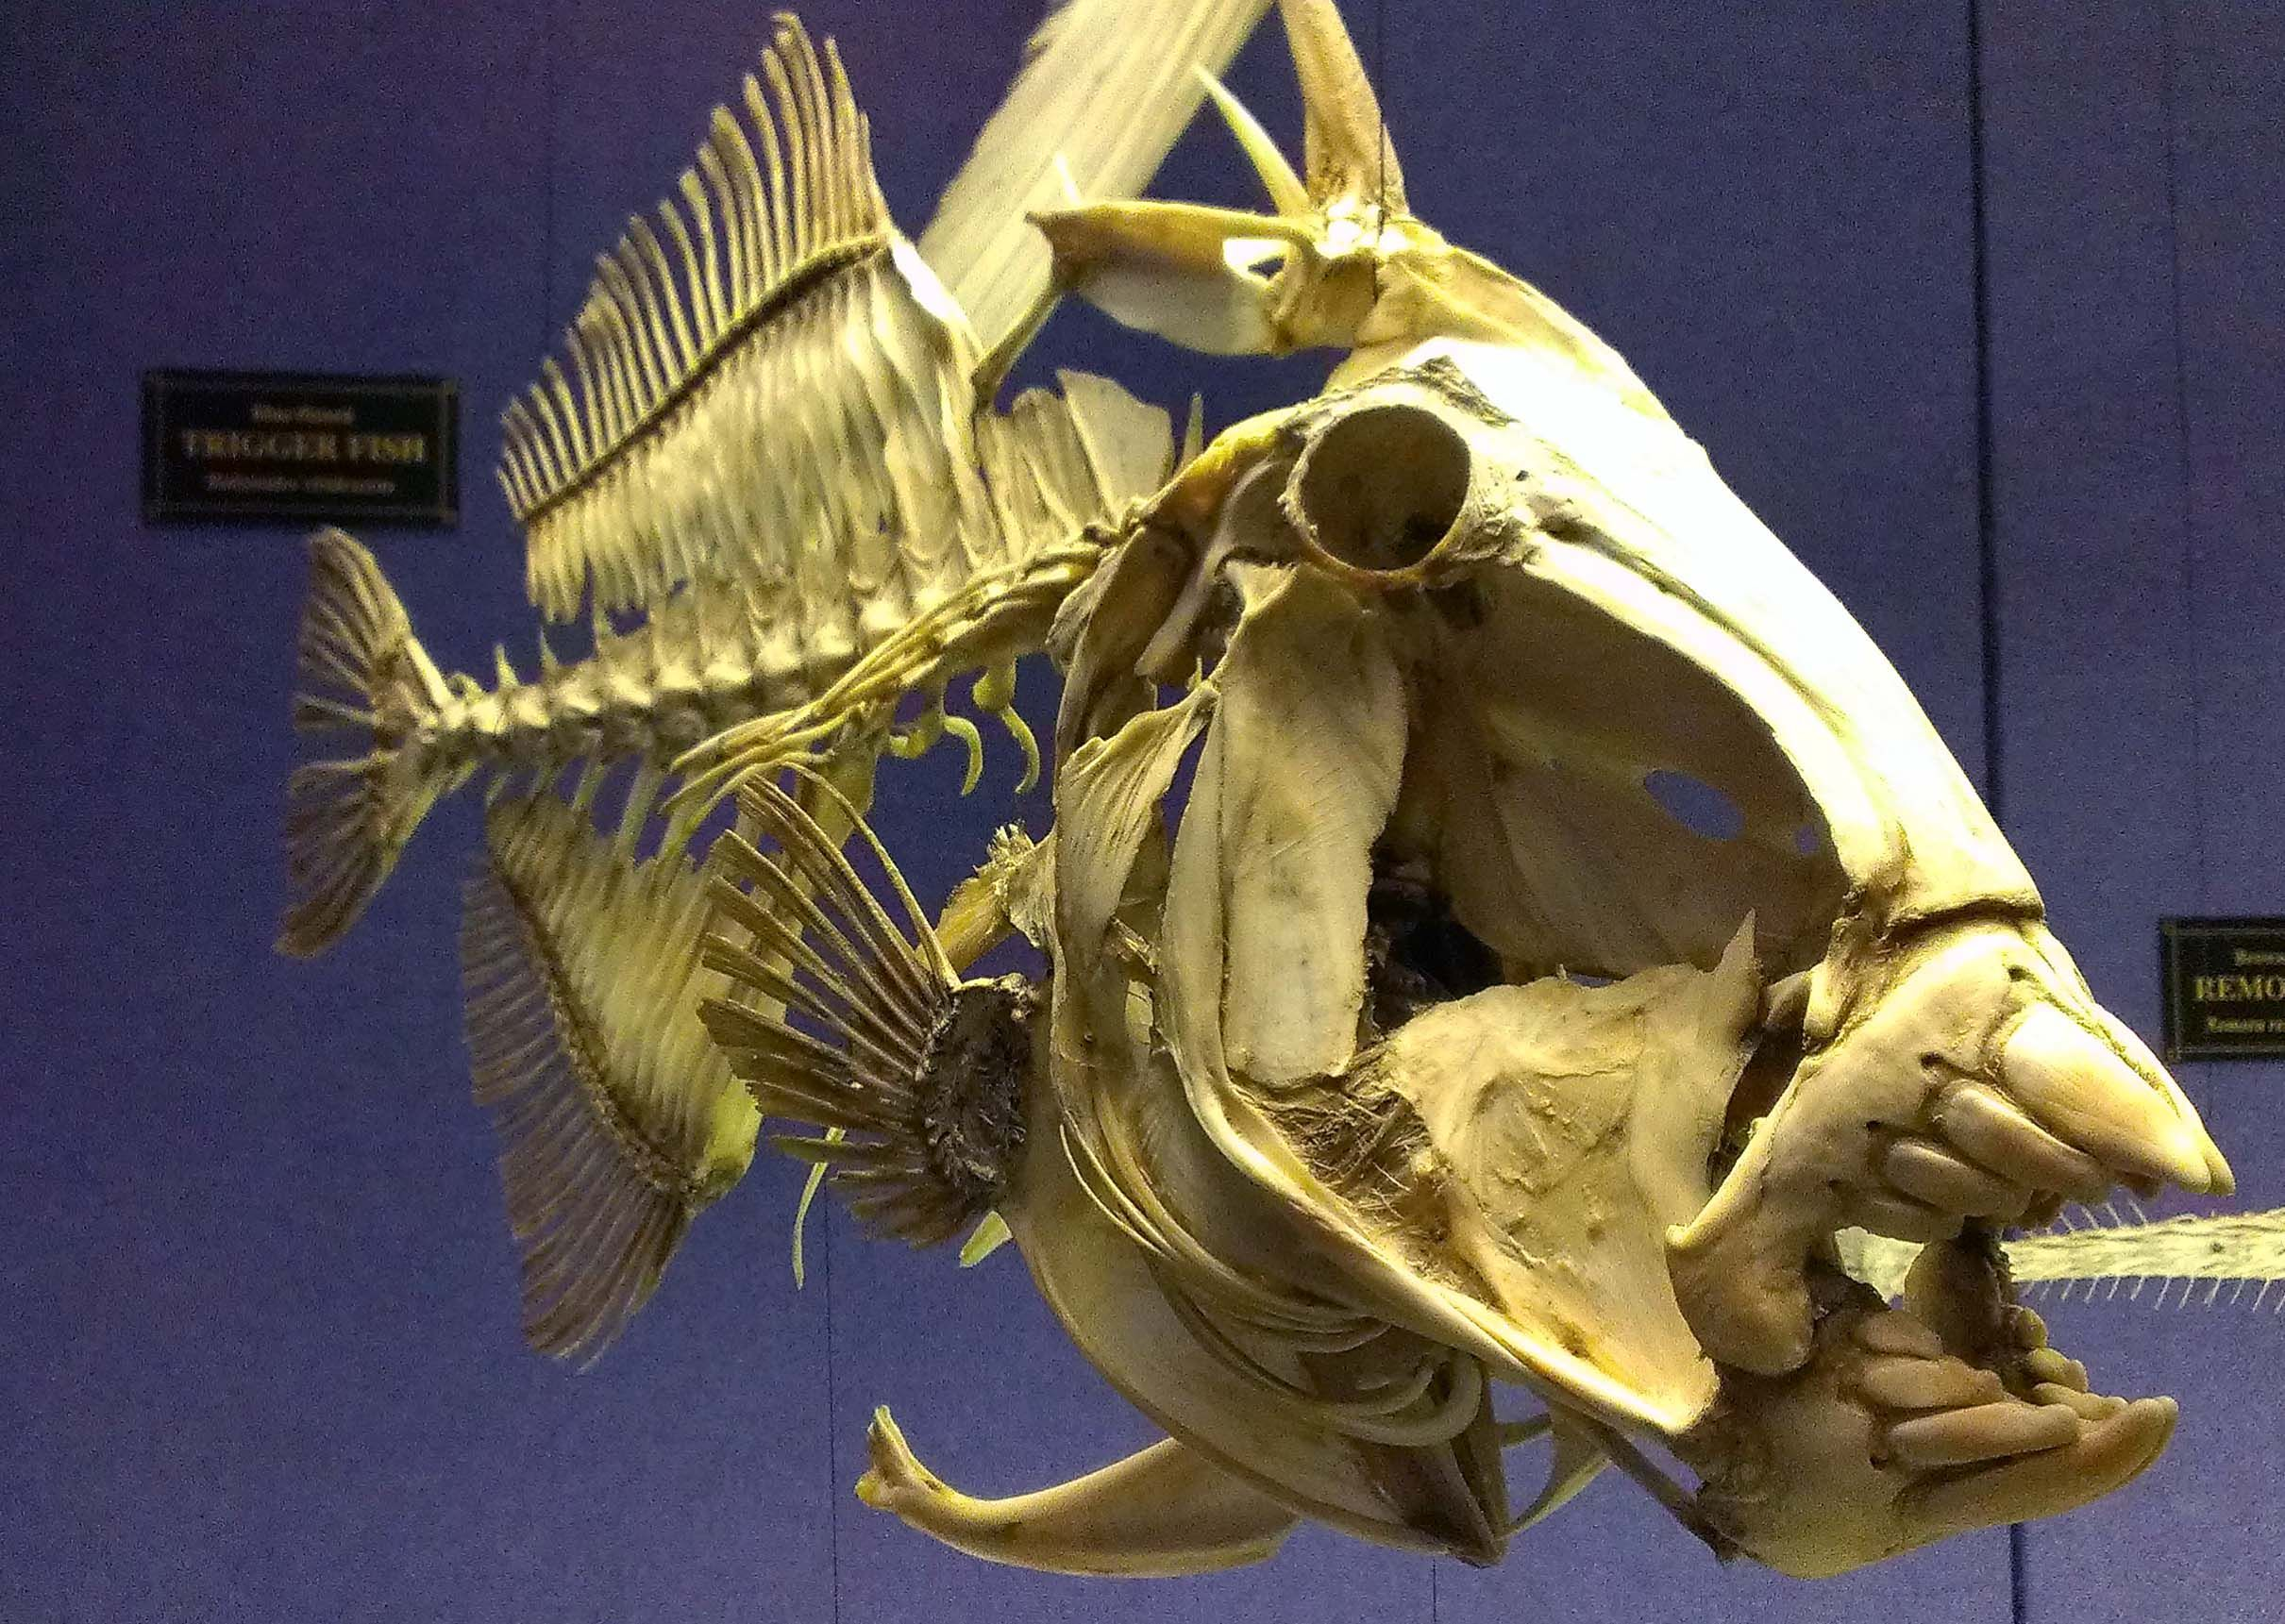 stargazer fish skull - Google Search | critters | Pinterest ...